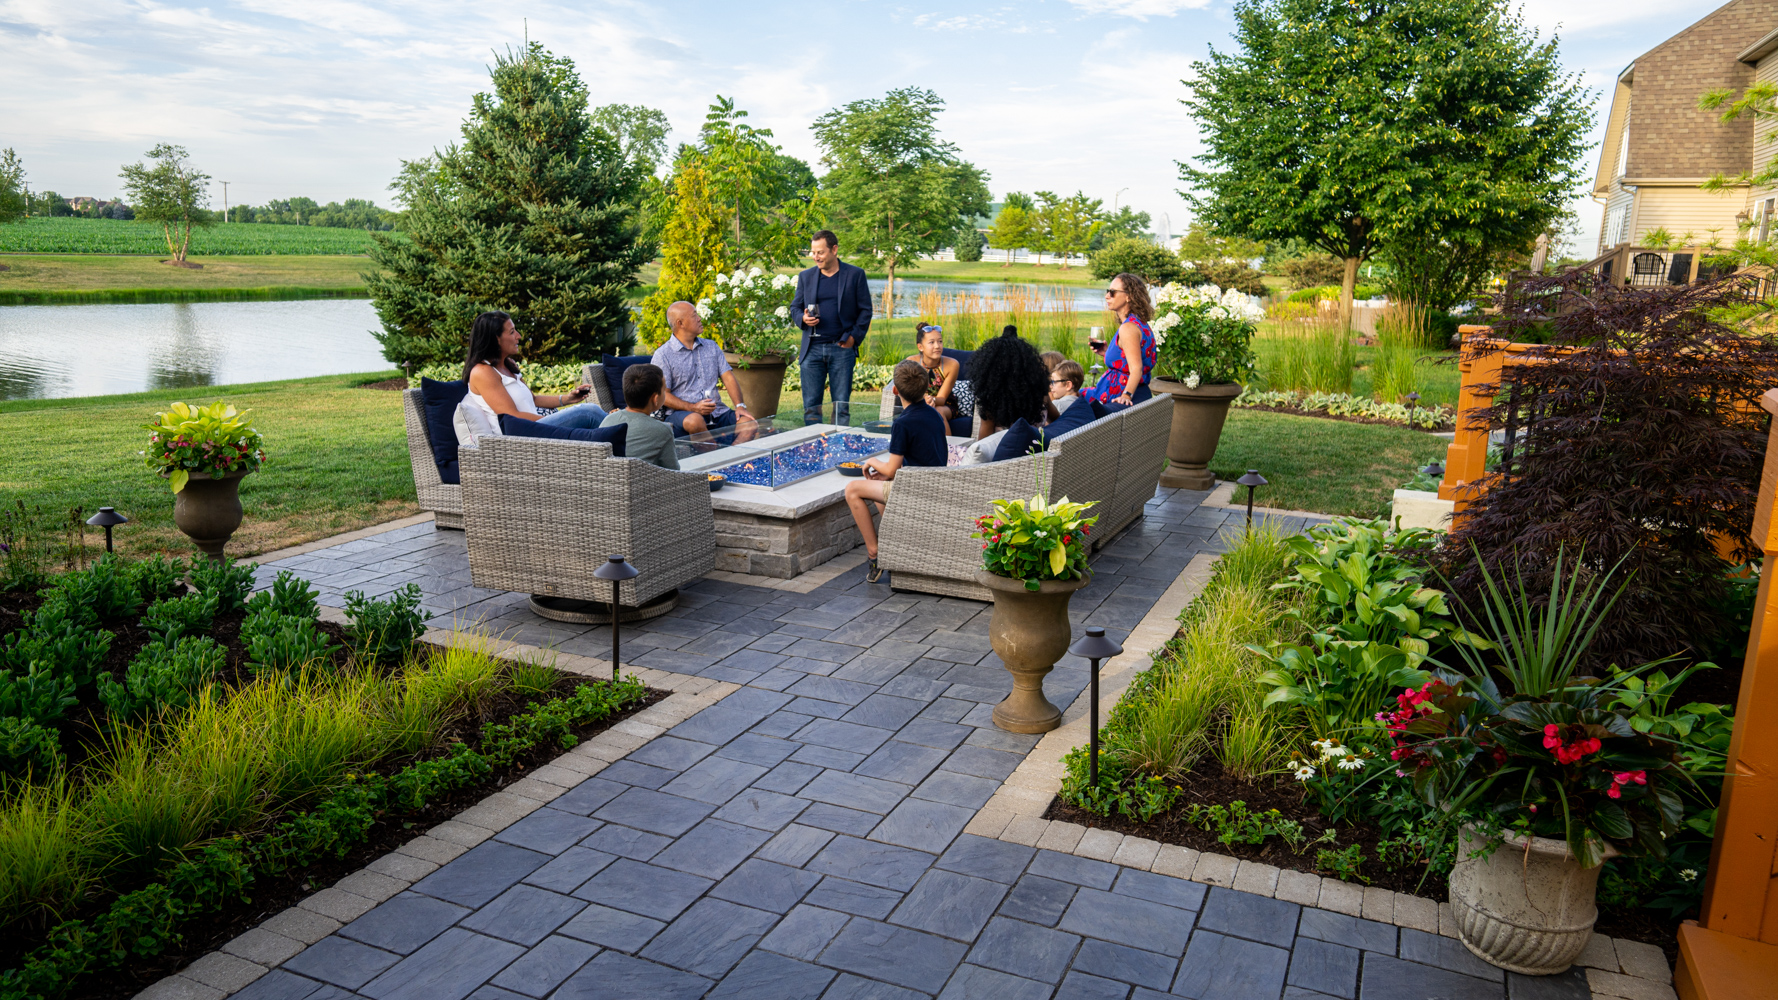 Are Backyard Fire Pits Safe? 3 Tips to Outdoor Fire Pit Safety